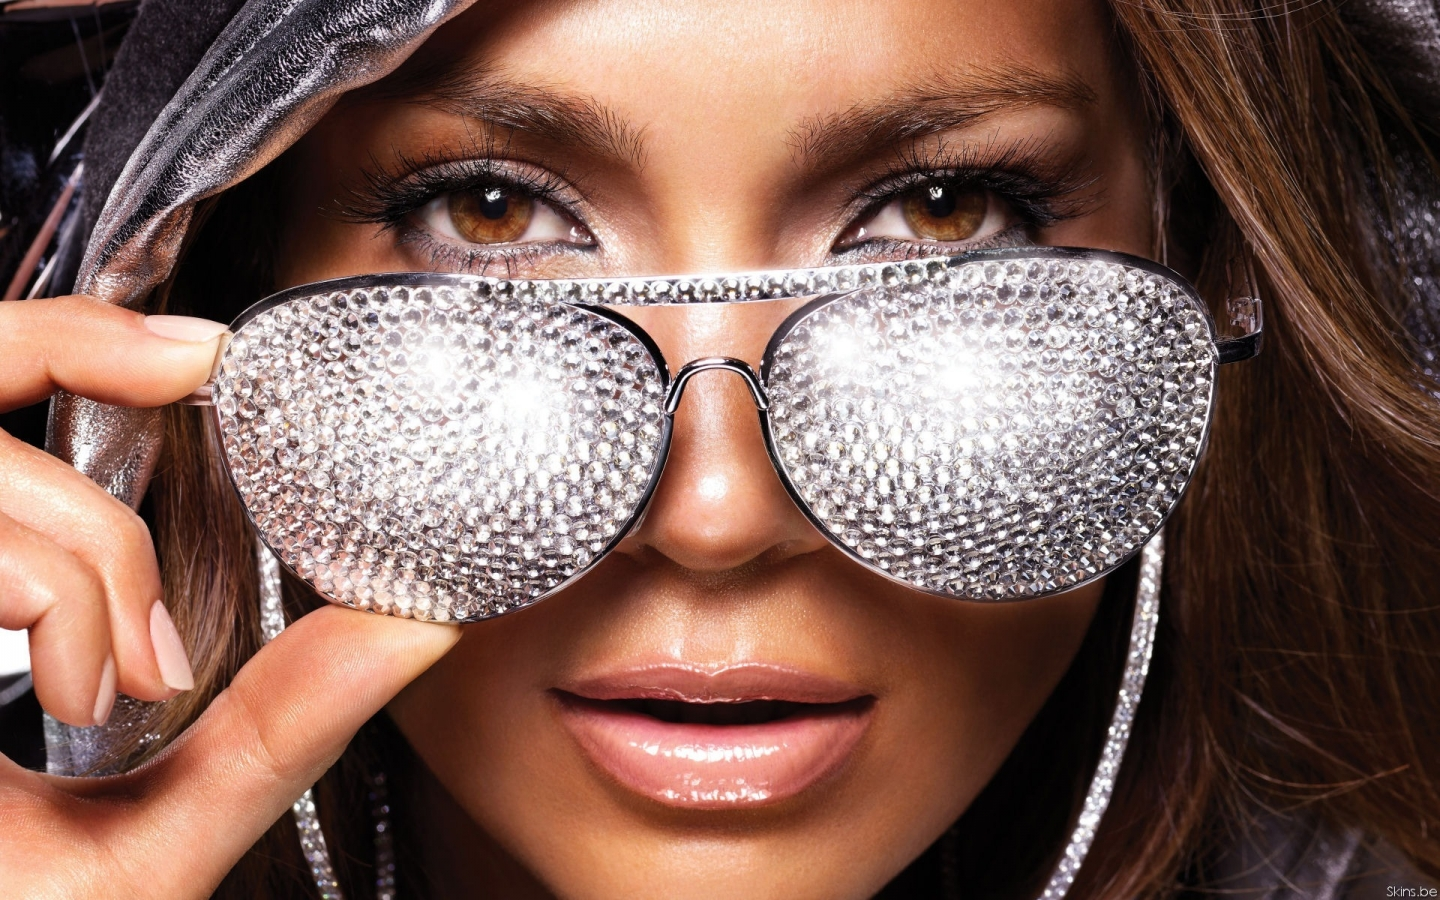 J.Lo Glasses for 1440 x 900 widescreen resolution